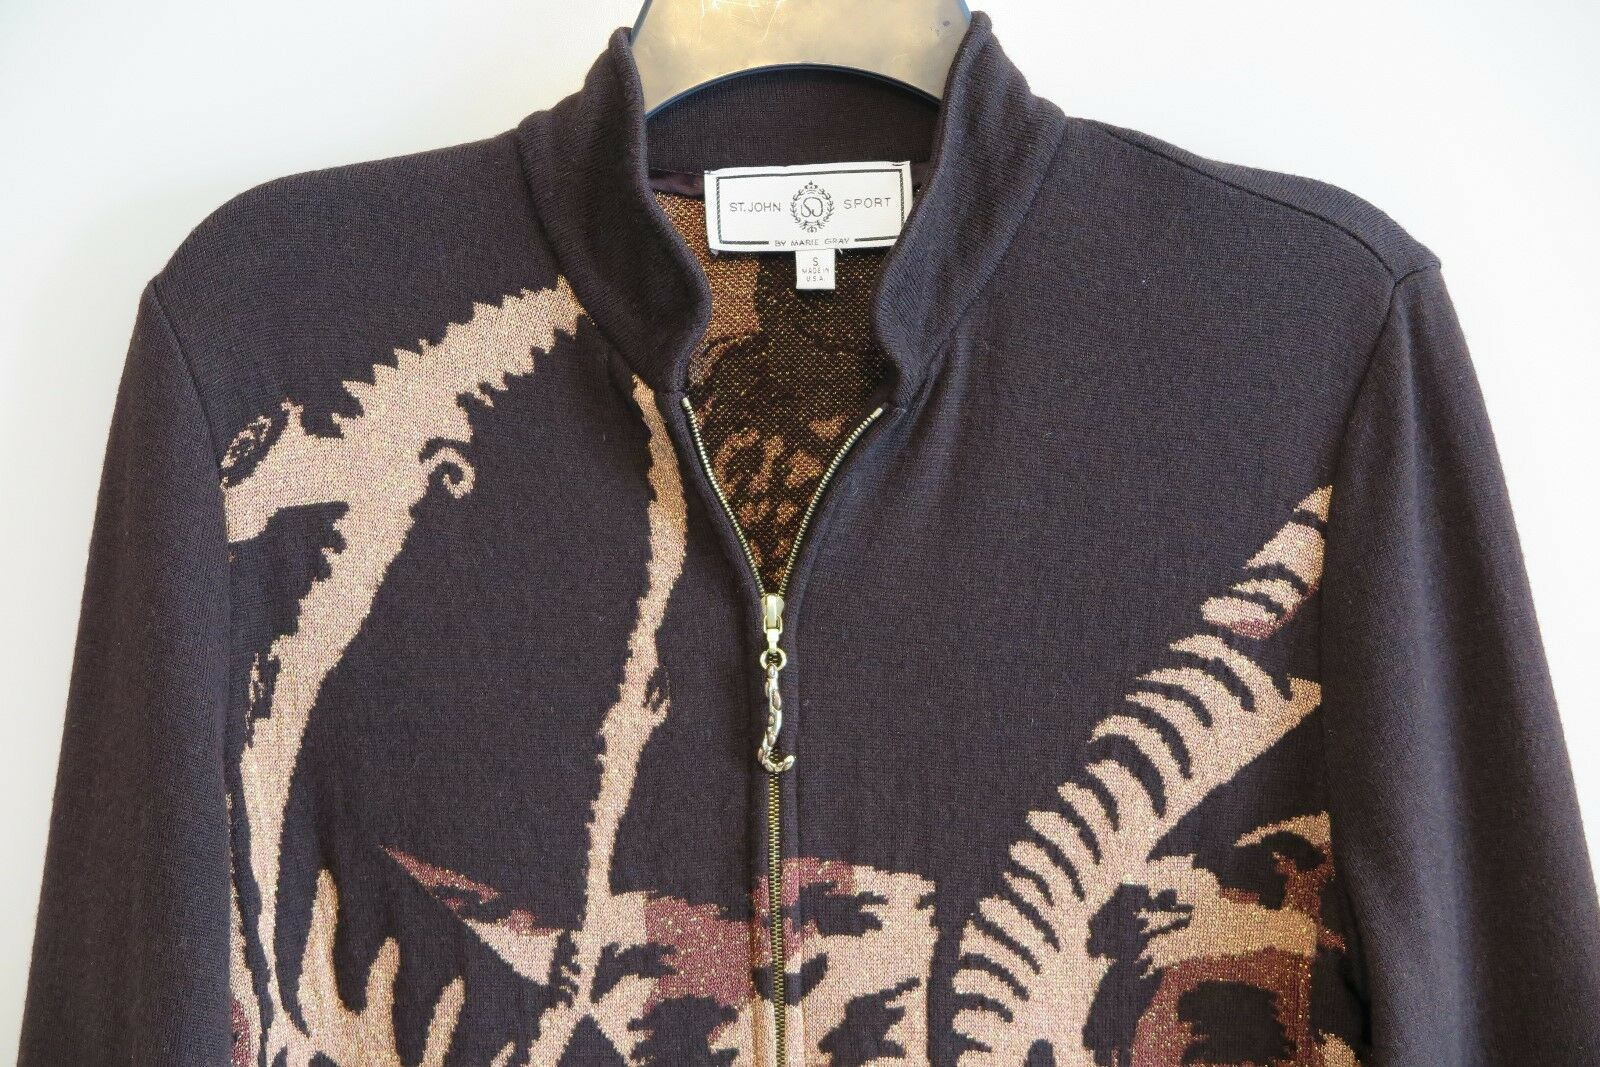 ST. ST. ST. JOHN SPORT Brown Metallic Tiger Print Zip-Front Cardigan Size S Made in USA d2c02d